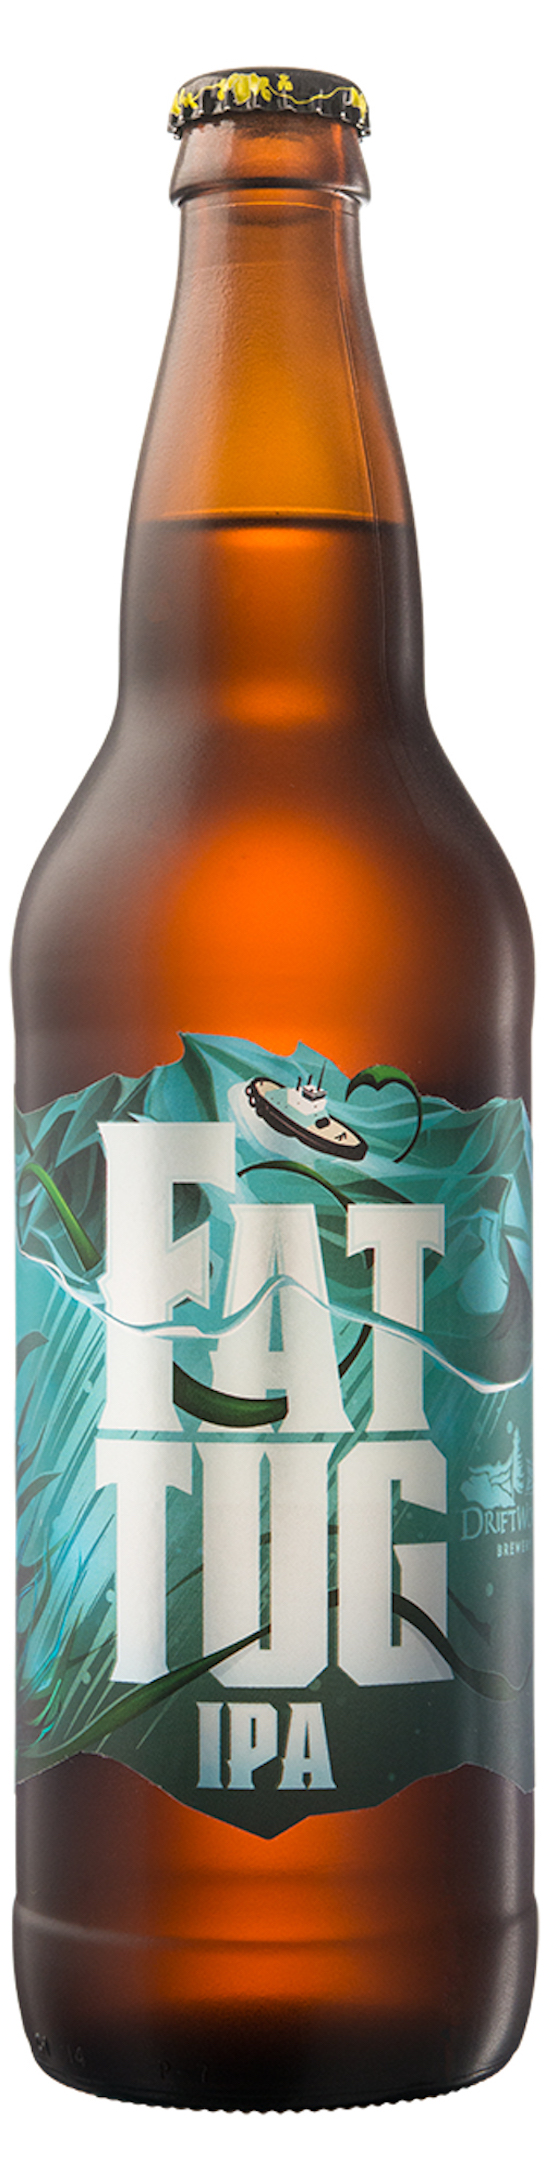 IPA-fat-tug-india-pale-ale-driftwood-brewery-just-beer